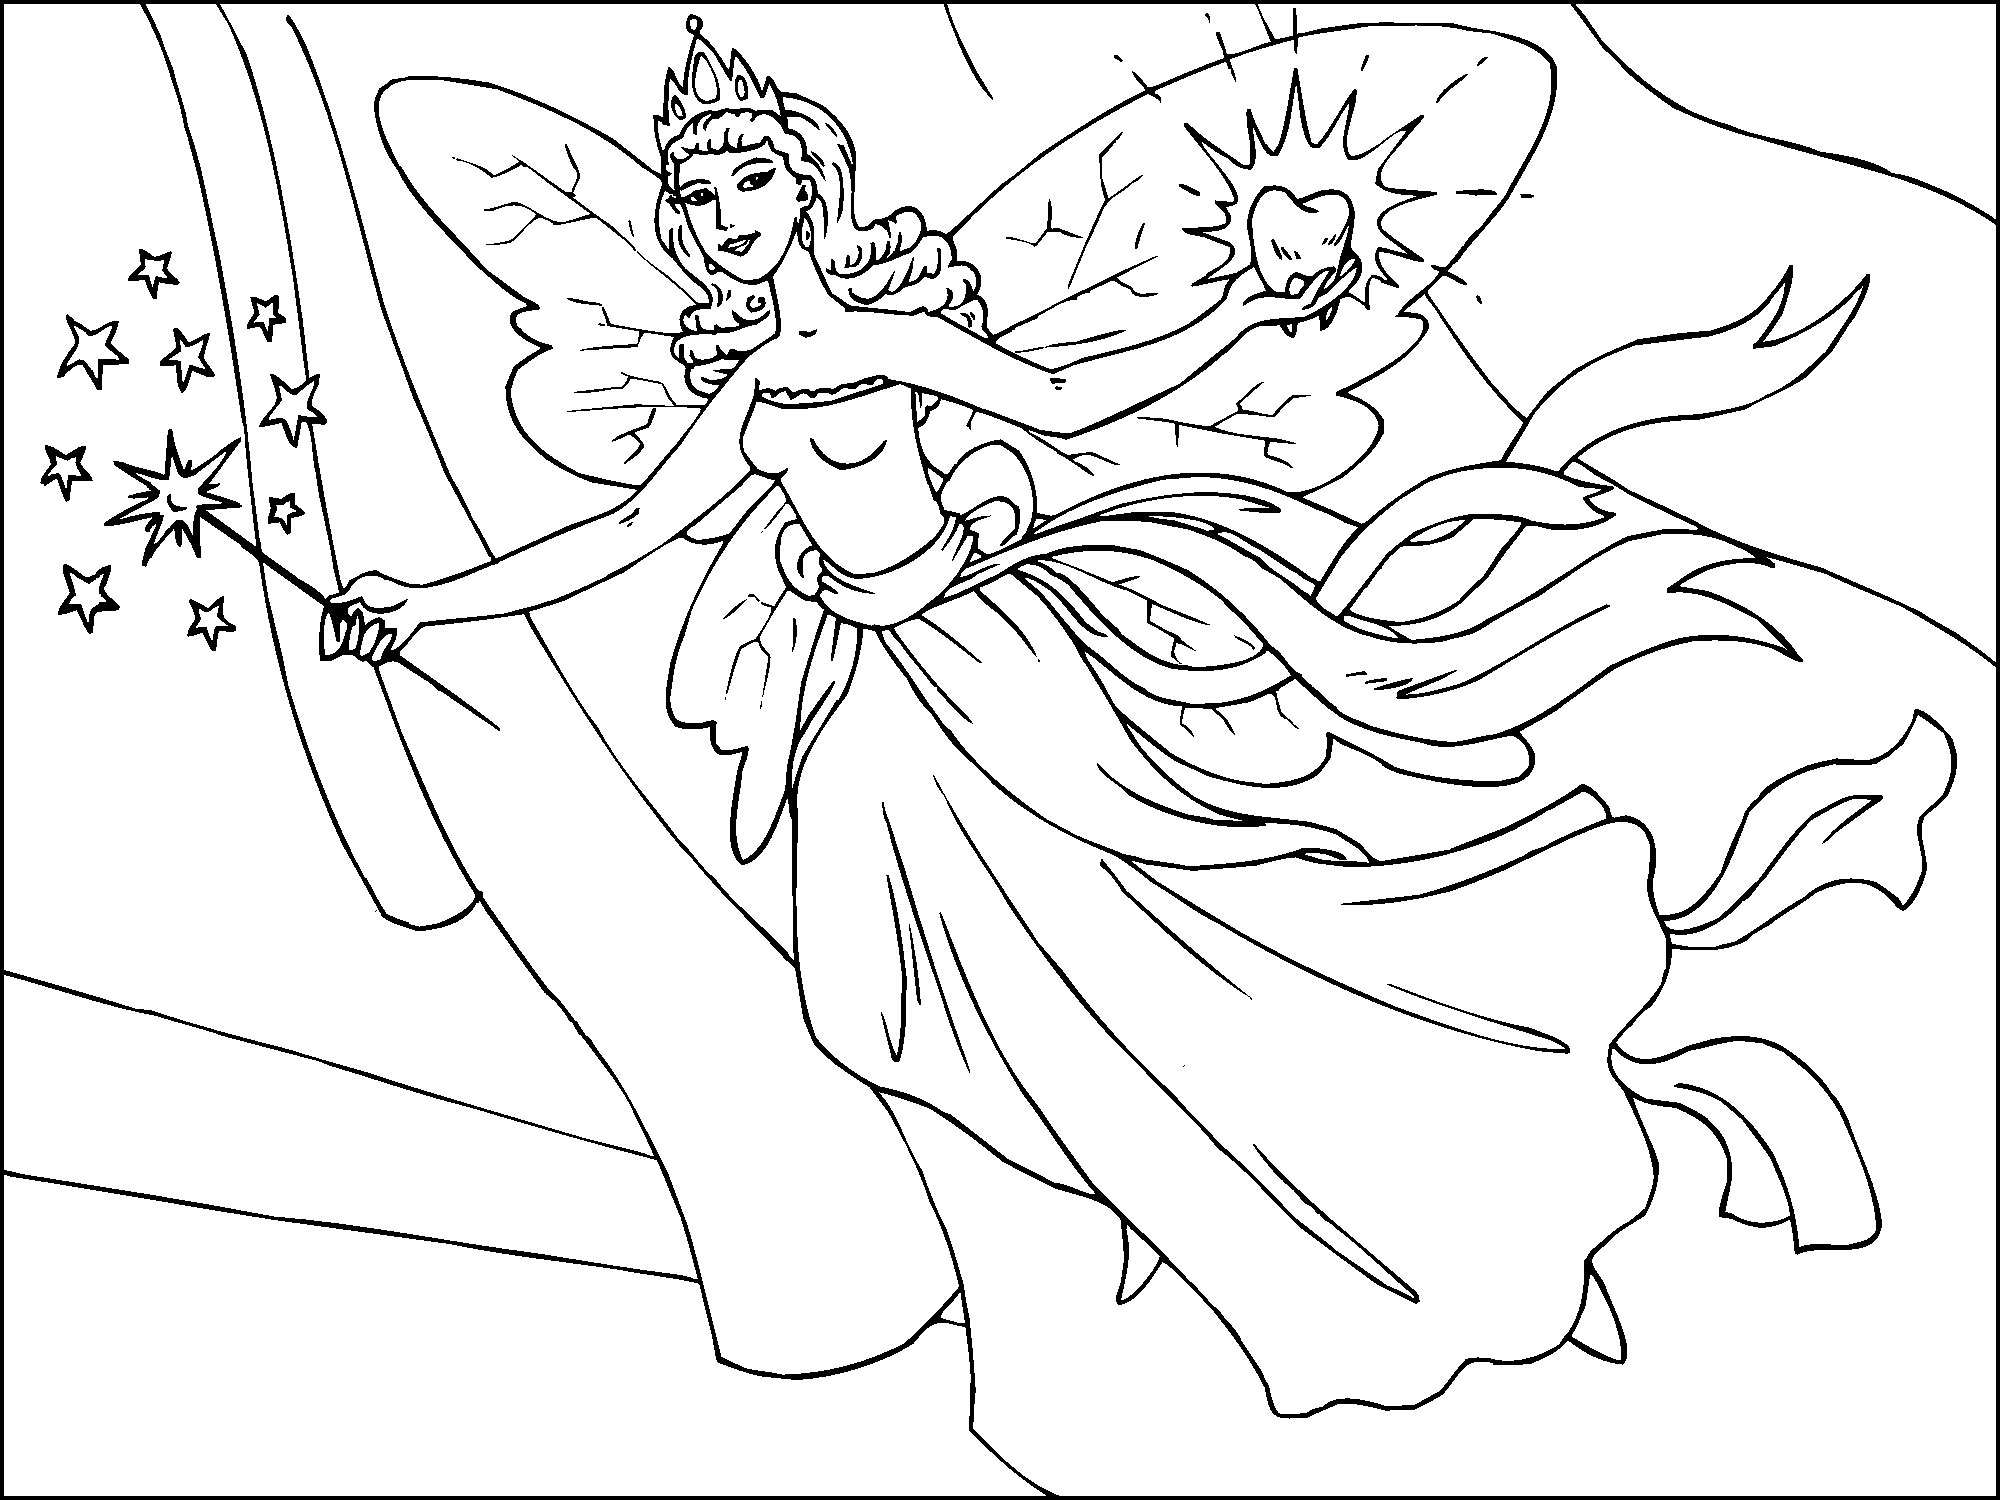 free fairy coloring pages to print - Fairy Coloring Page